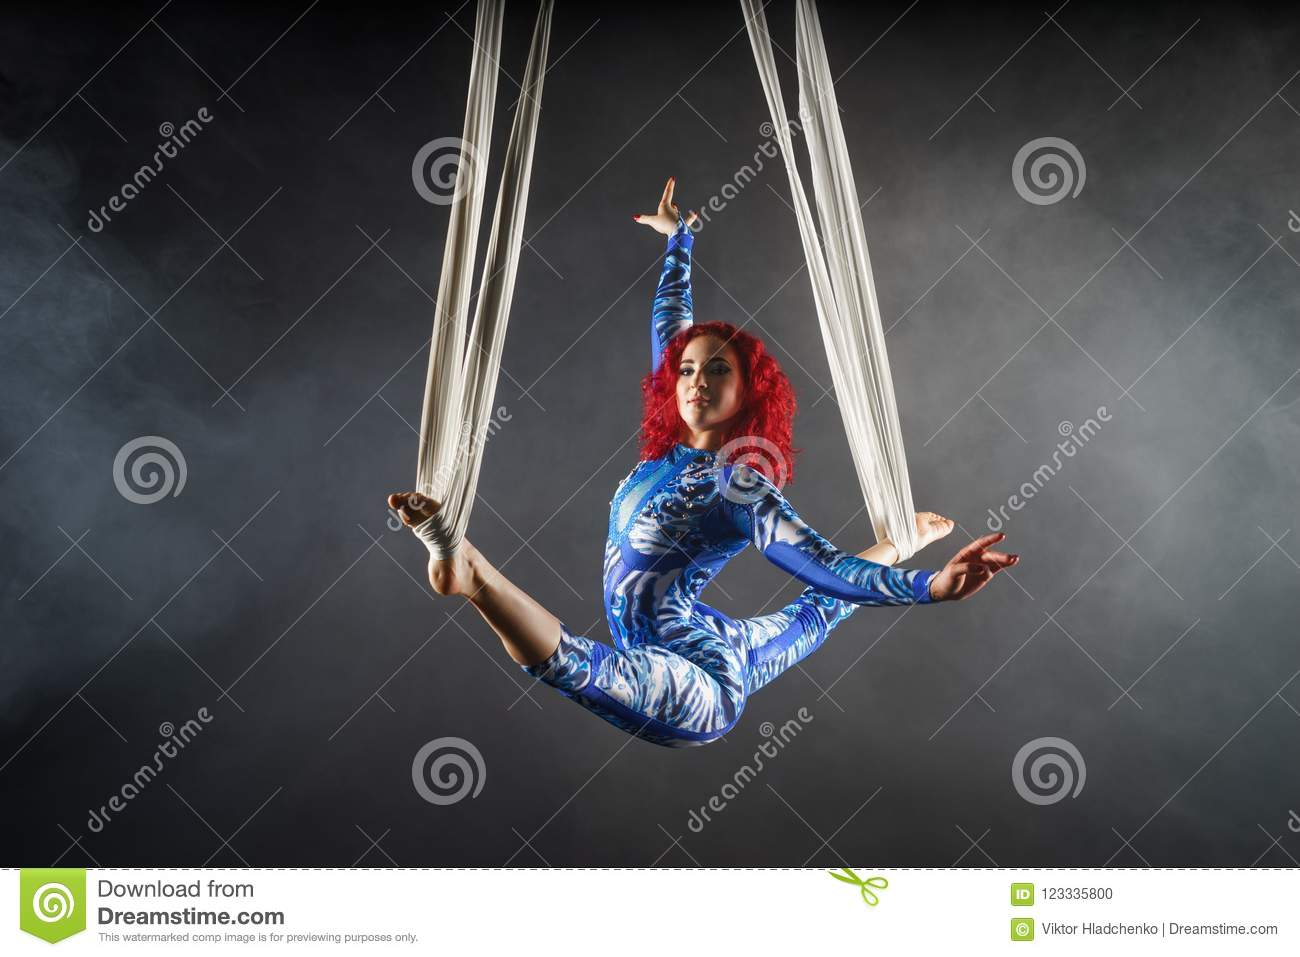 Athletic aerial circus artist with redhead in blue costume dancing in the air with balance